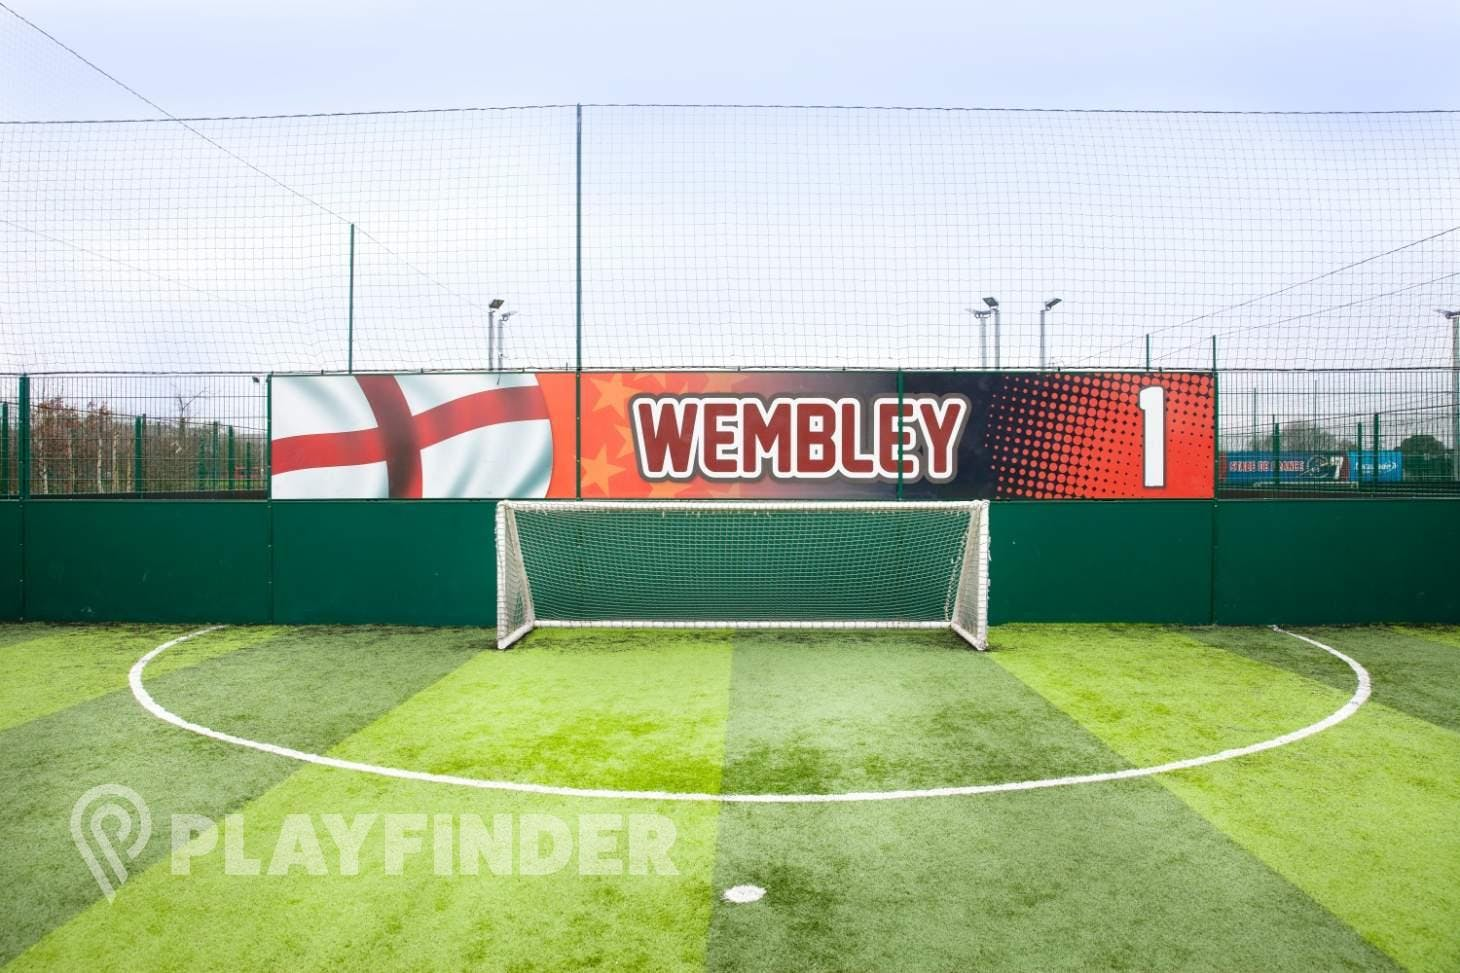 Goals Doncaster 5 a side | 3G Astroturf football pitch